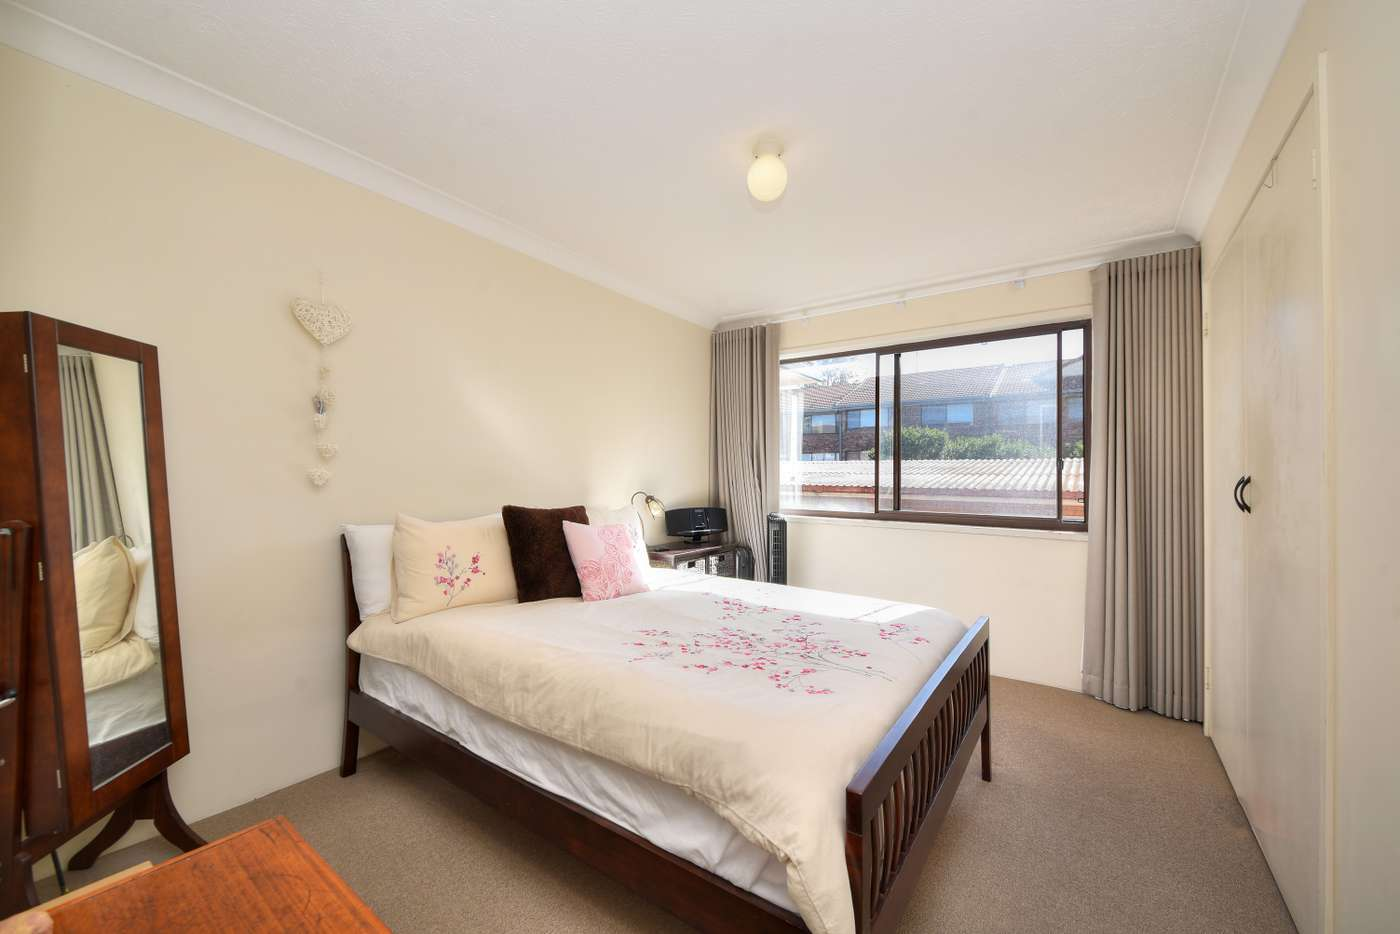 Sixth view of Homely unit listing, 2/156 Frank Street, Labrador QLD 4215